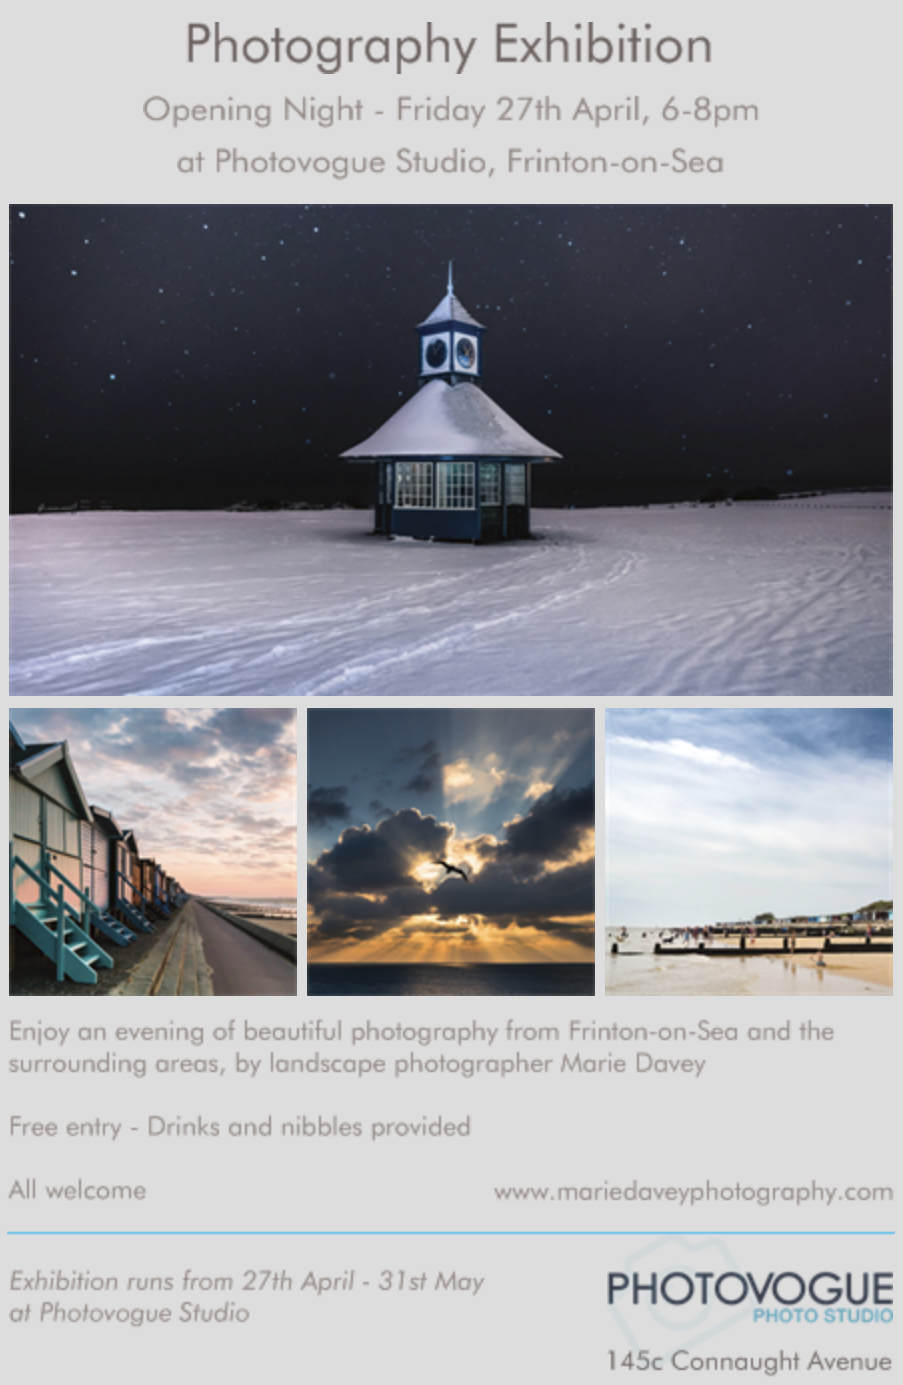 The Beauty of Frinton-on-Sea Photography Exhibition